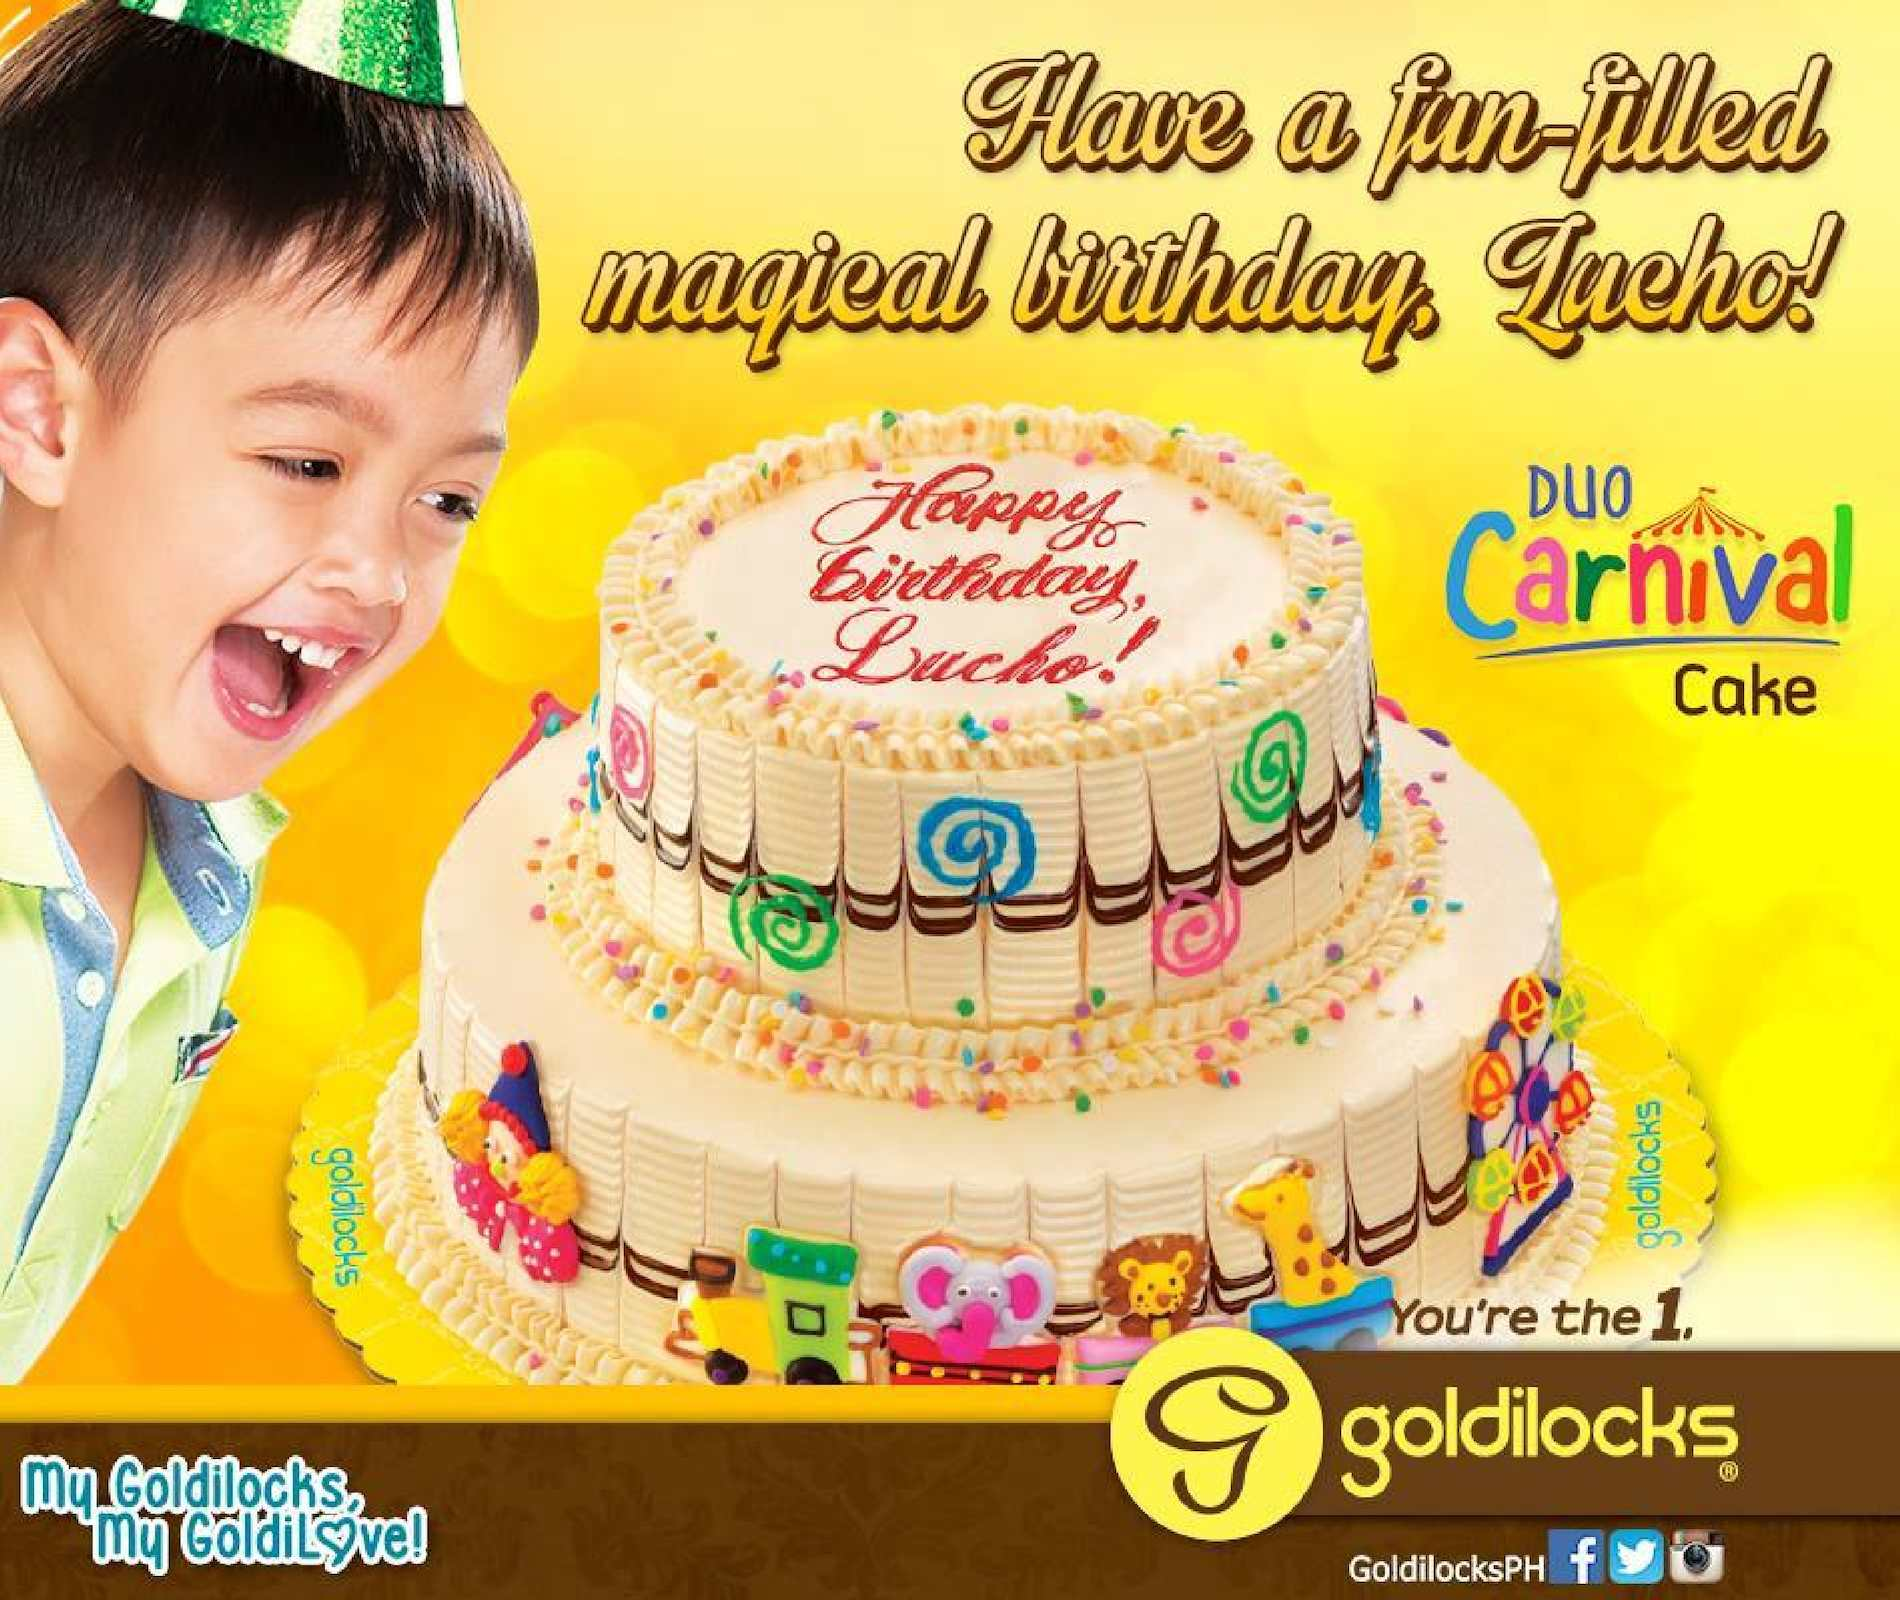 Awe Inspiring Calameo Duo Carnival Cake For Only P520 At Goldilocks While Funny Birthday Cards Online Alyptdamsfinfo